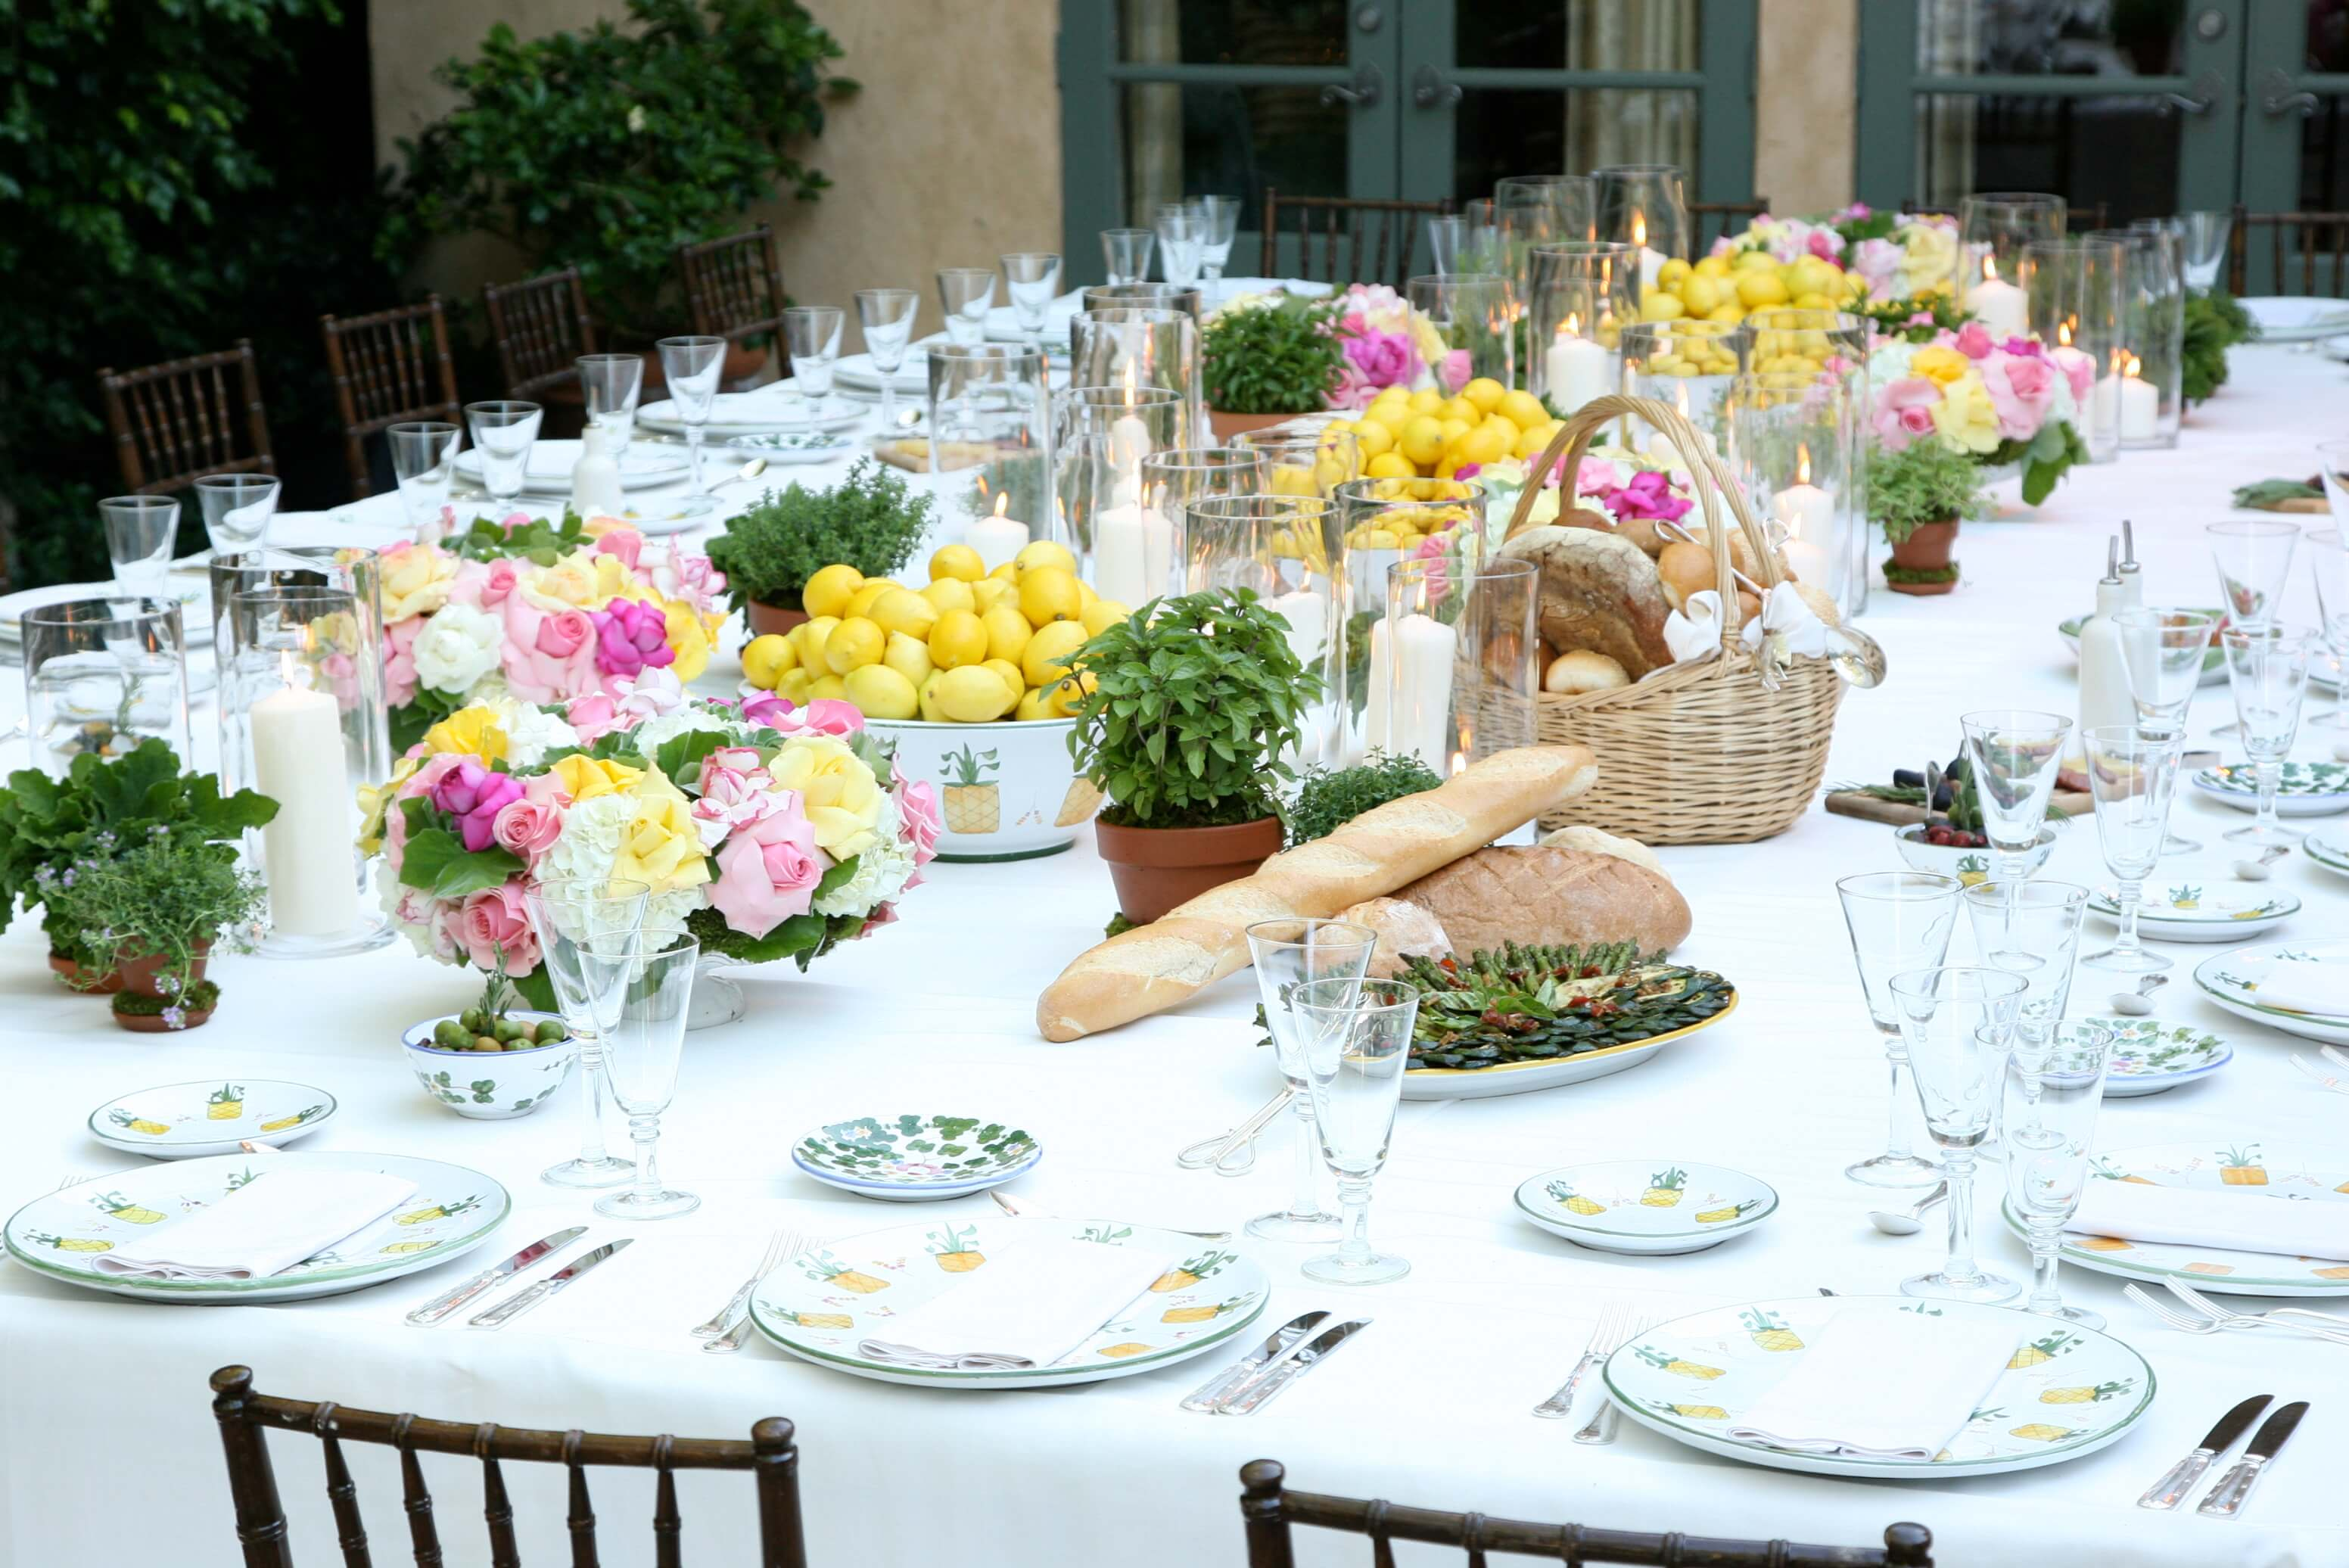 Catering Events - Table Arrangement-746956063